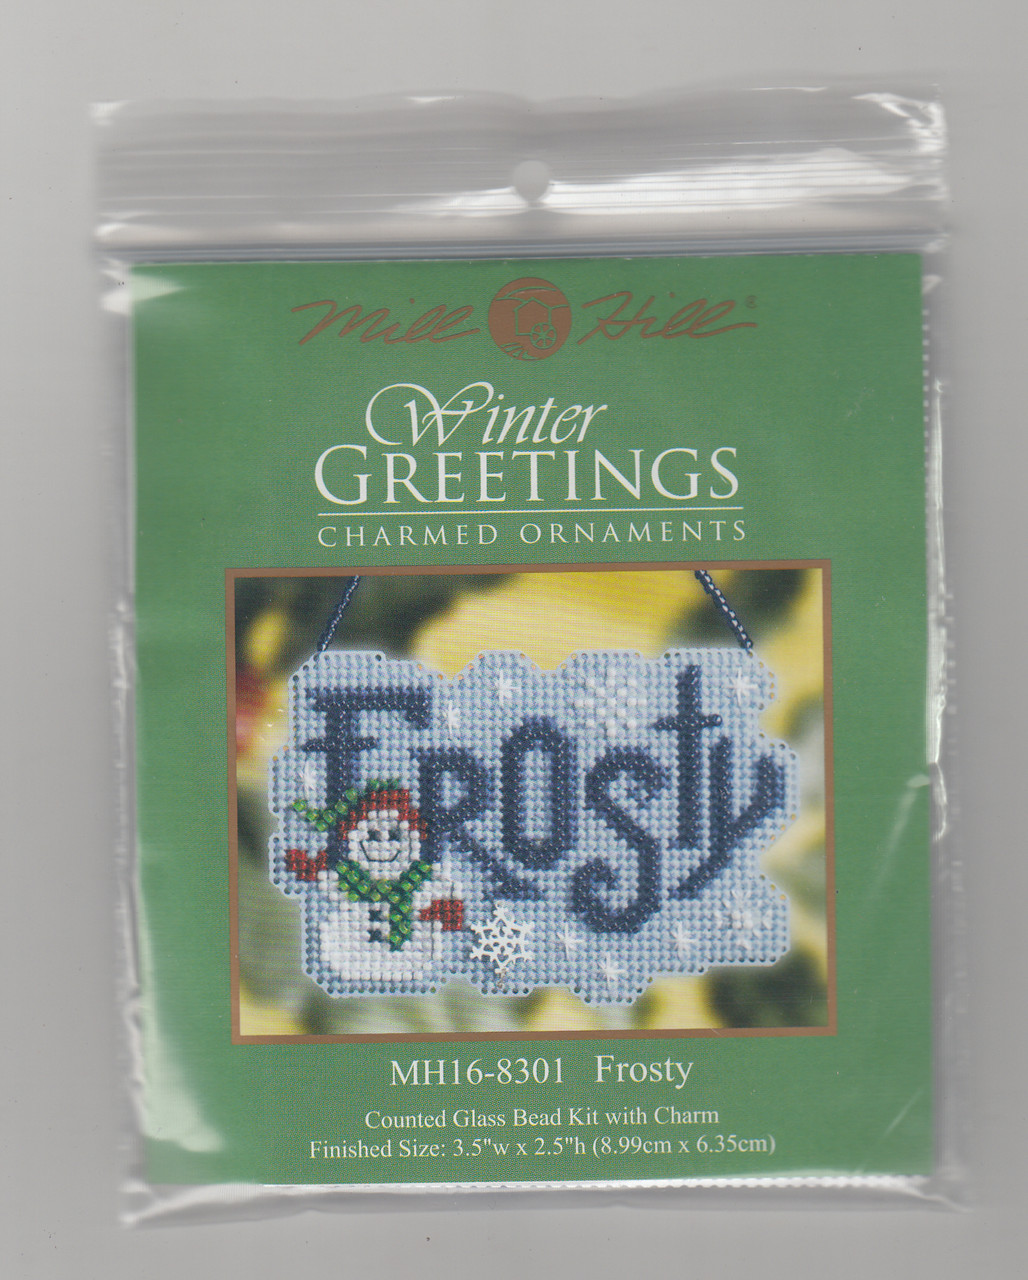 Mill Hill 2008 Winter Greetings Charmed Ornament - Frosty